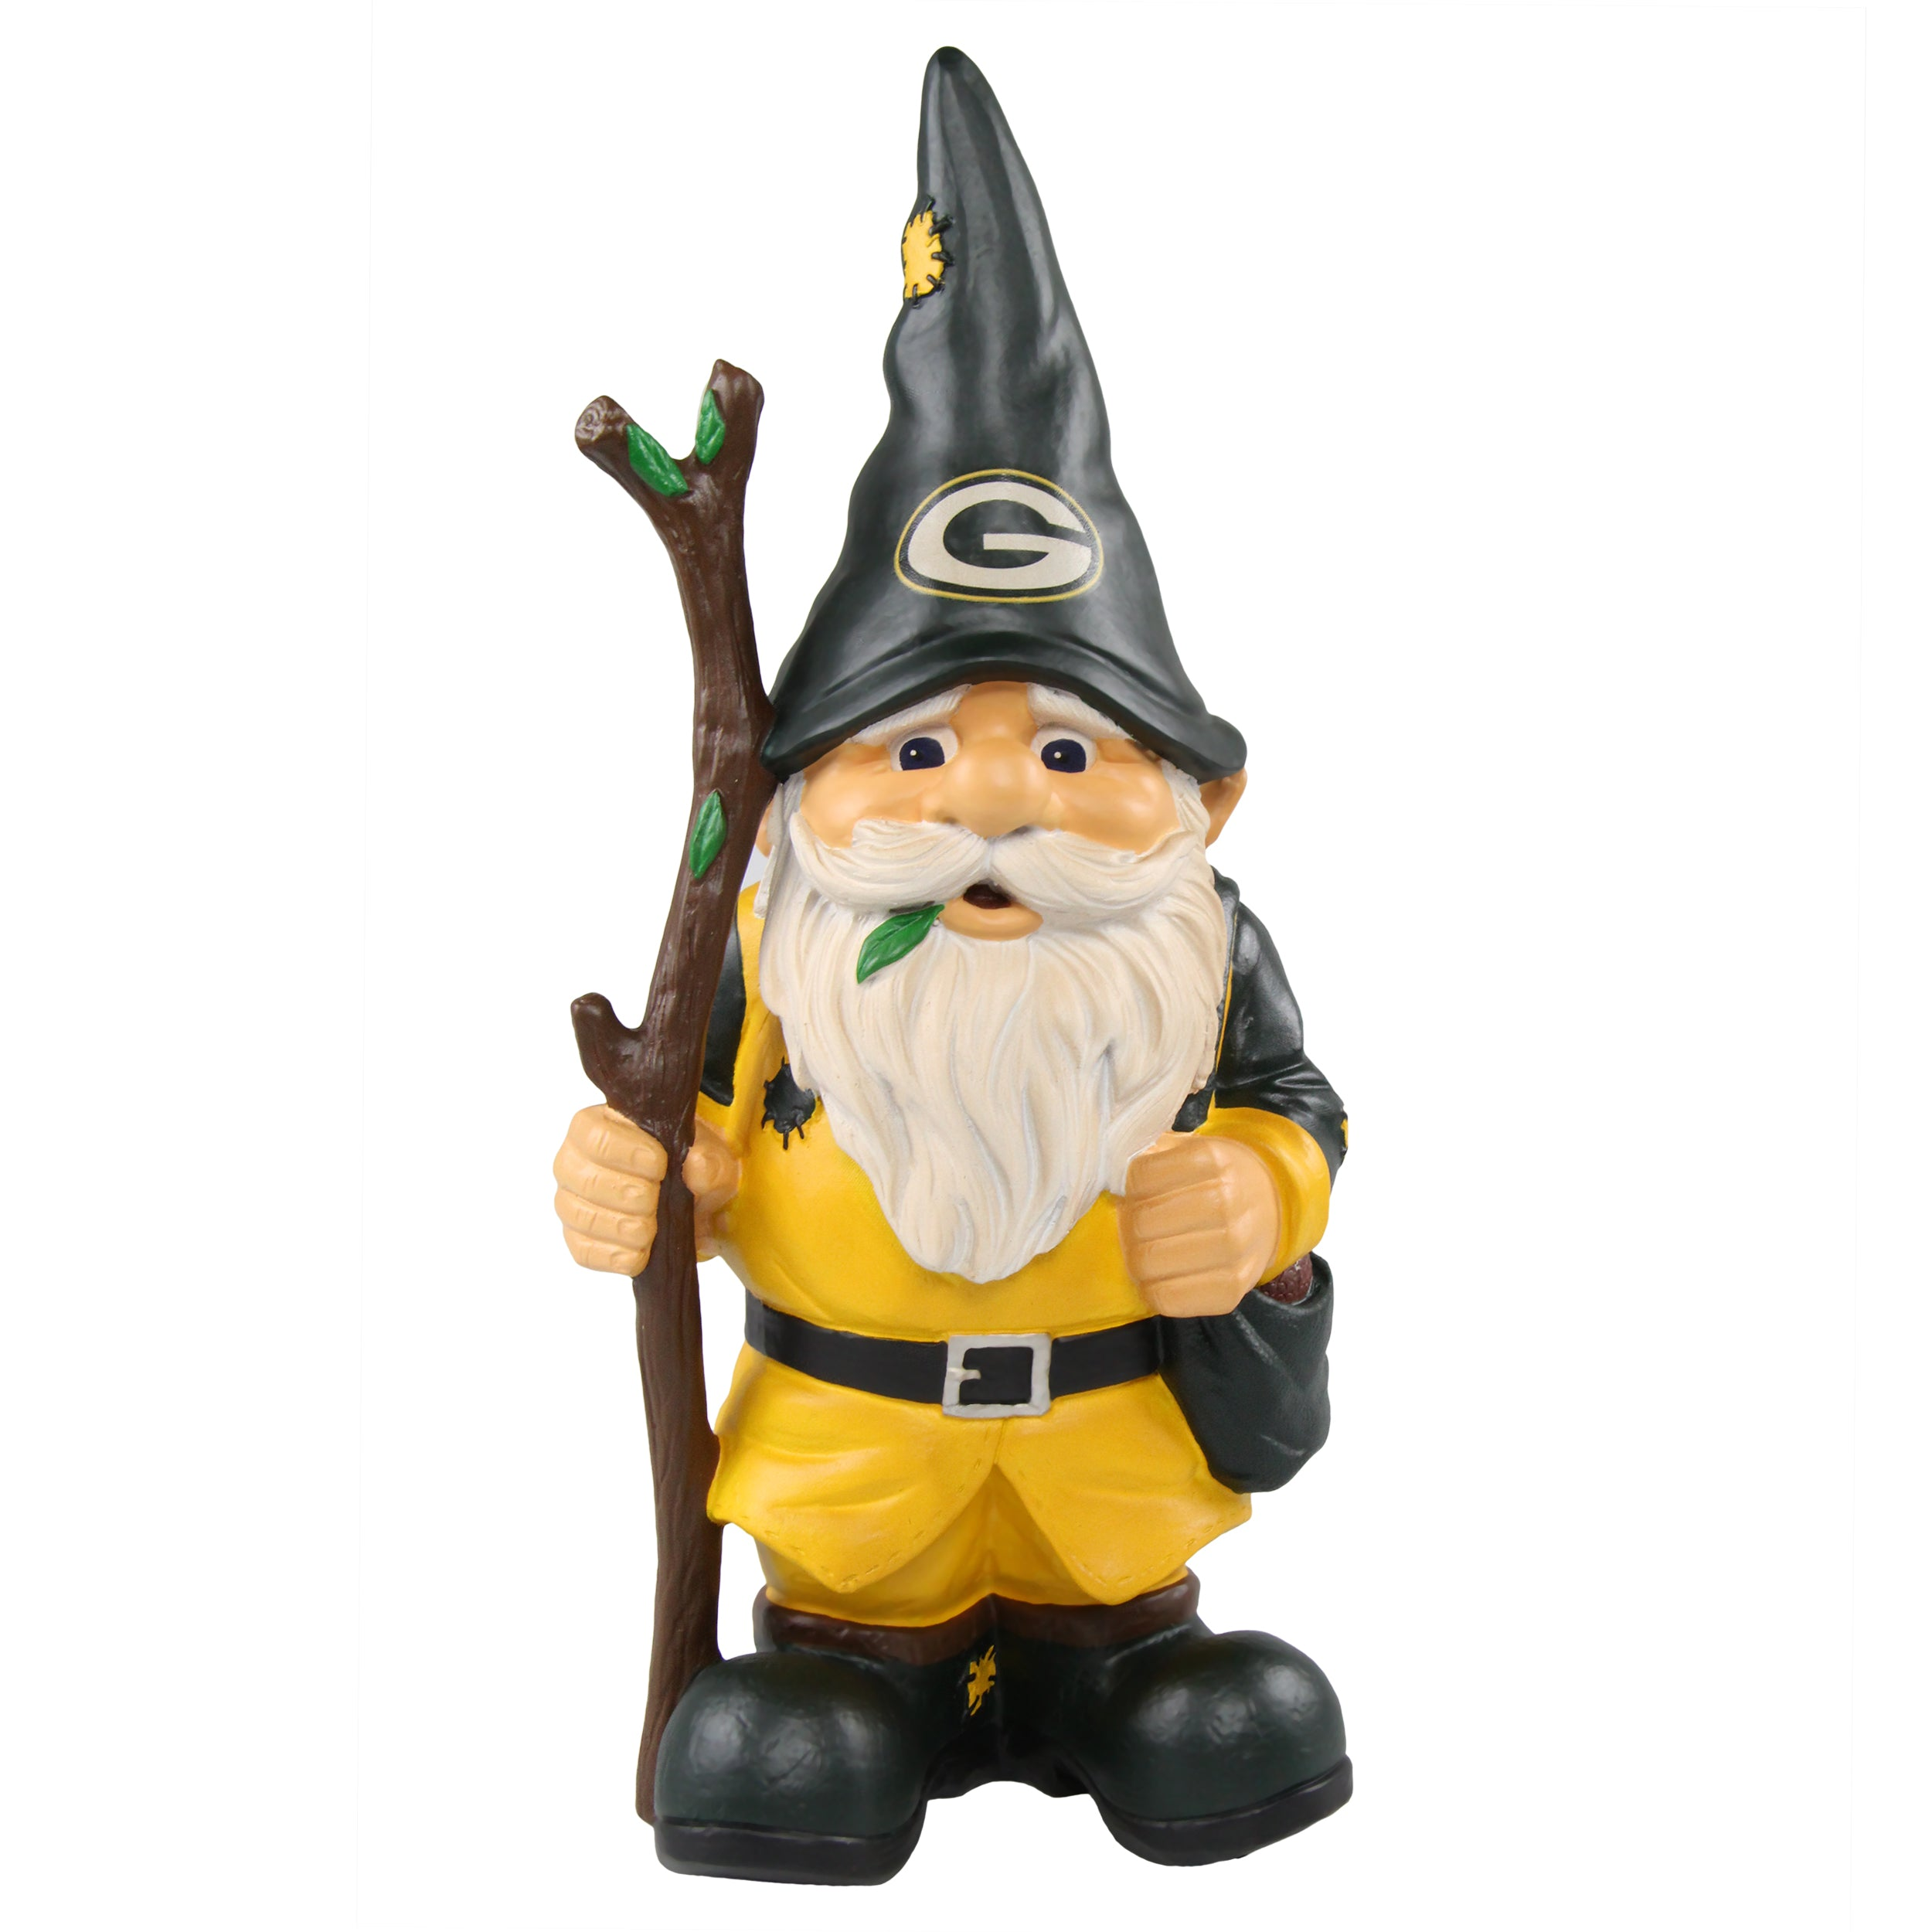 Swell Green Bay Packers 10 5 Holding Stick Garden Gnome Download Free Architecture Designs Scobabritishbridgeorg